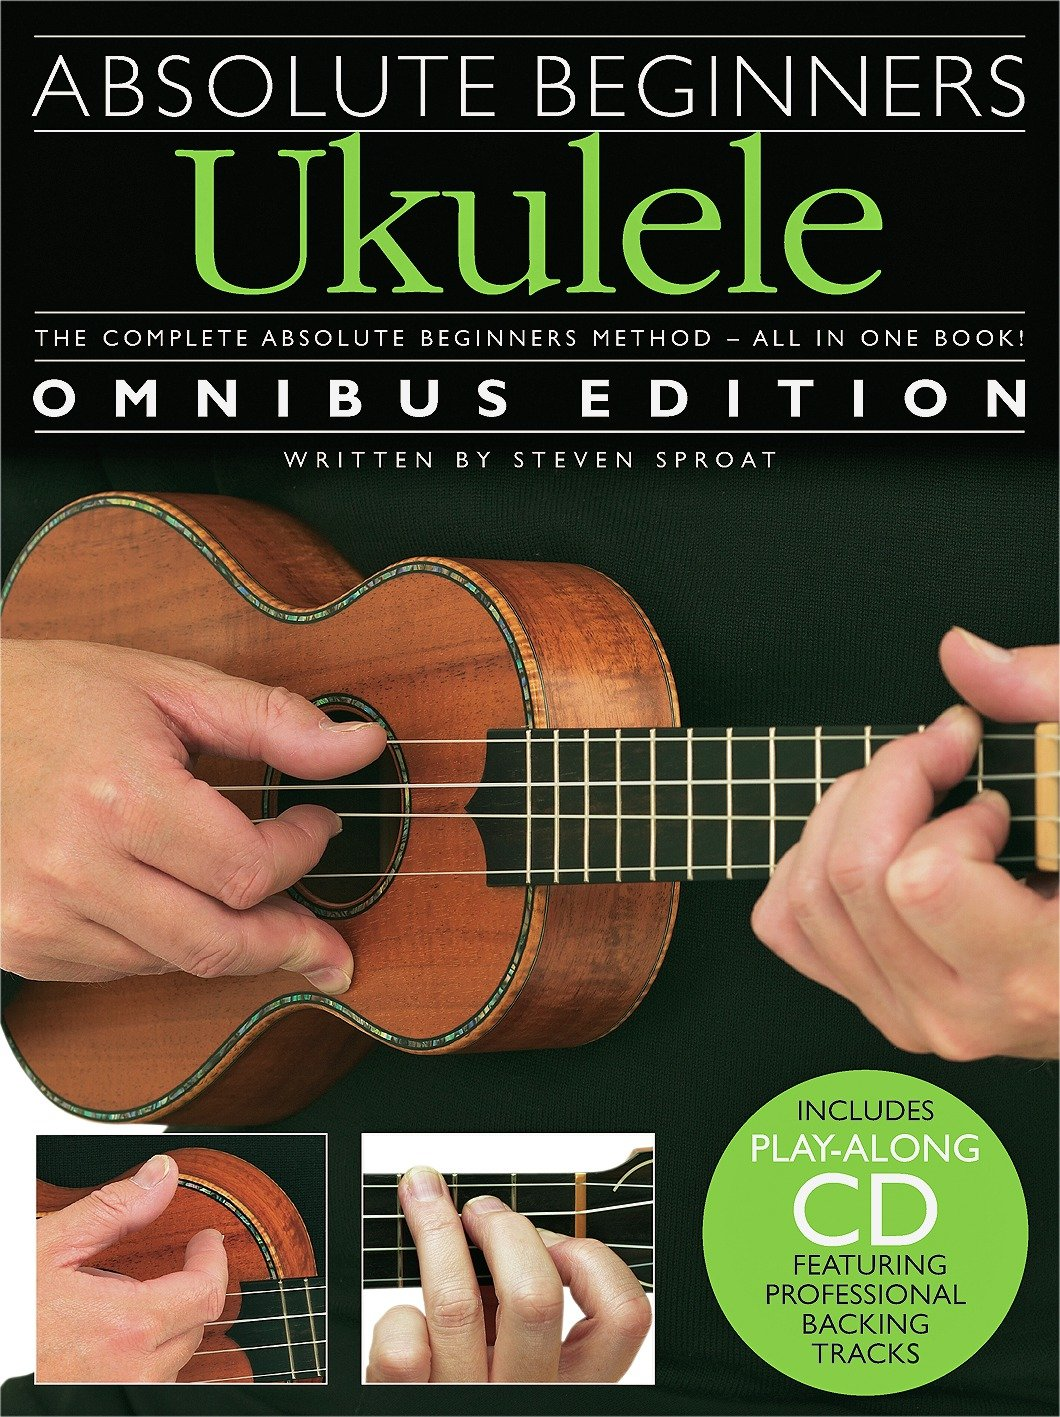 Image of Absolute Beginners - Ukulele Book - Omnibus Edition